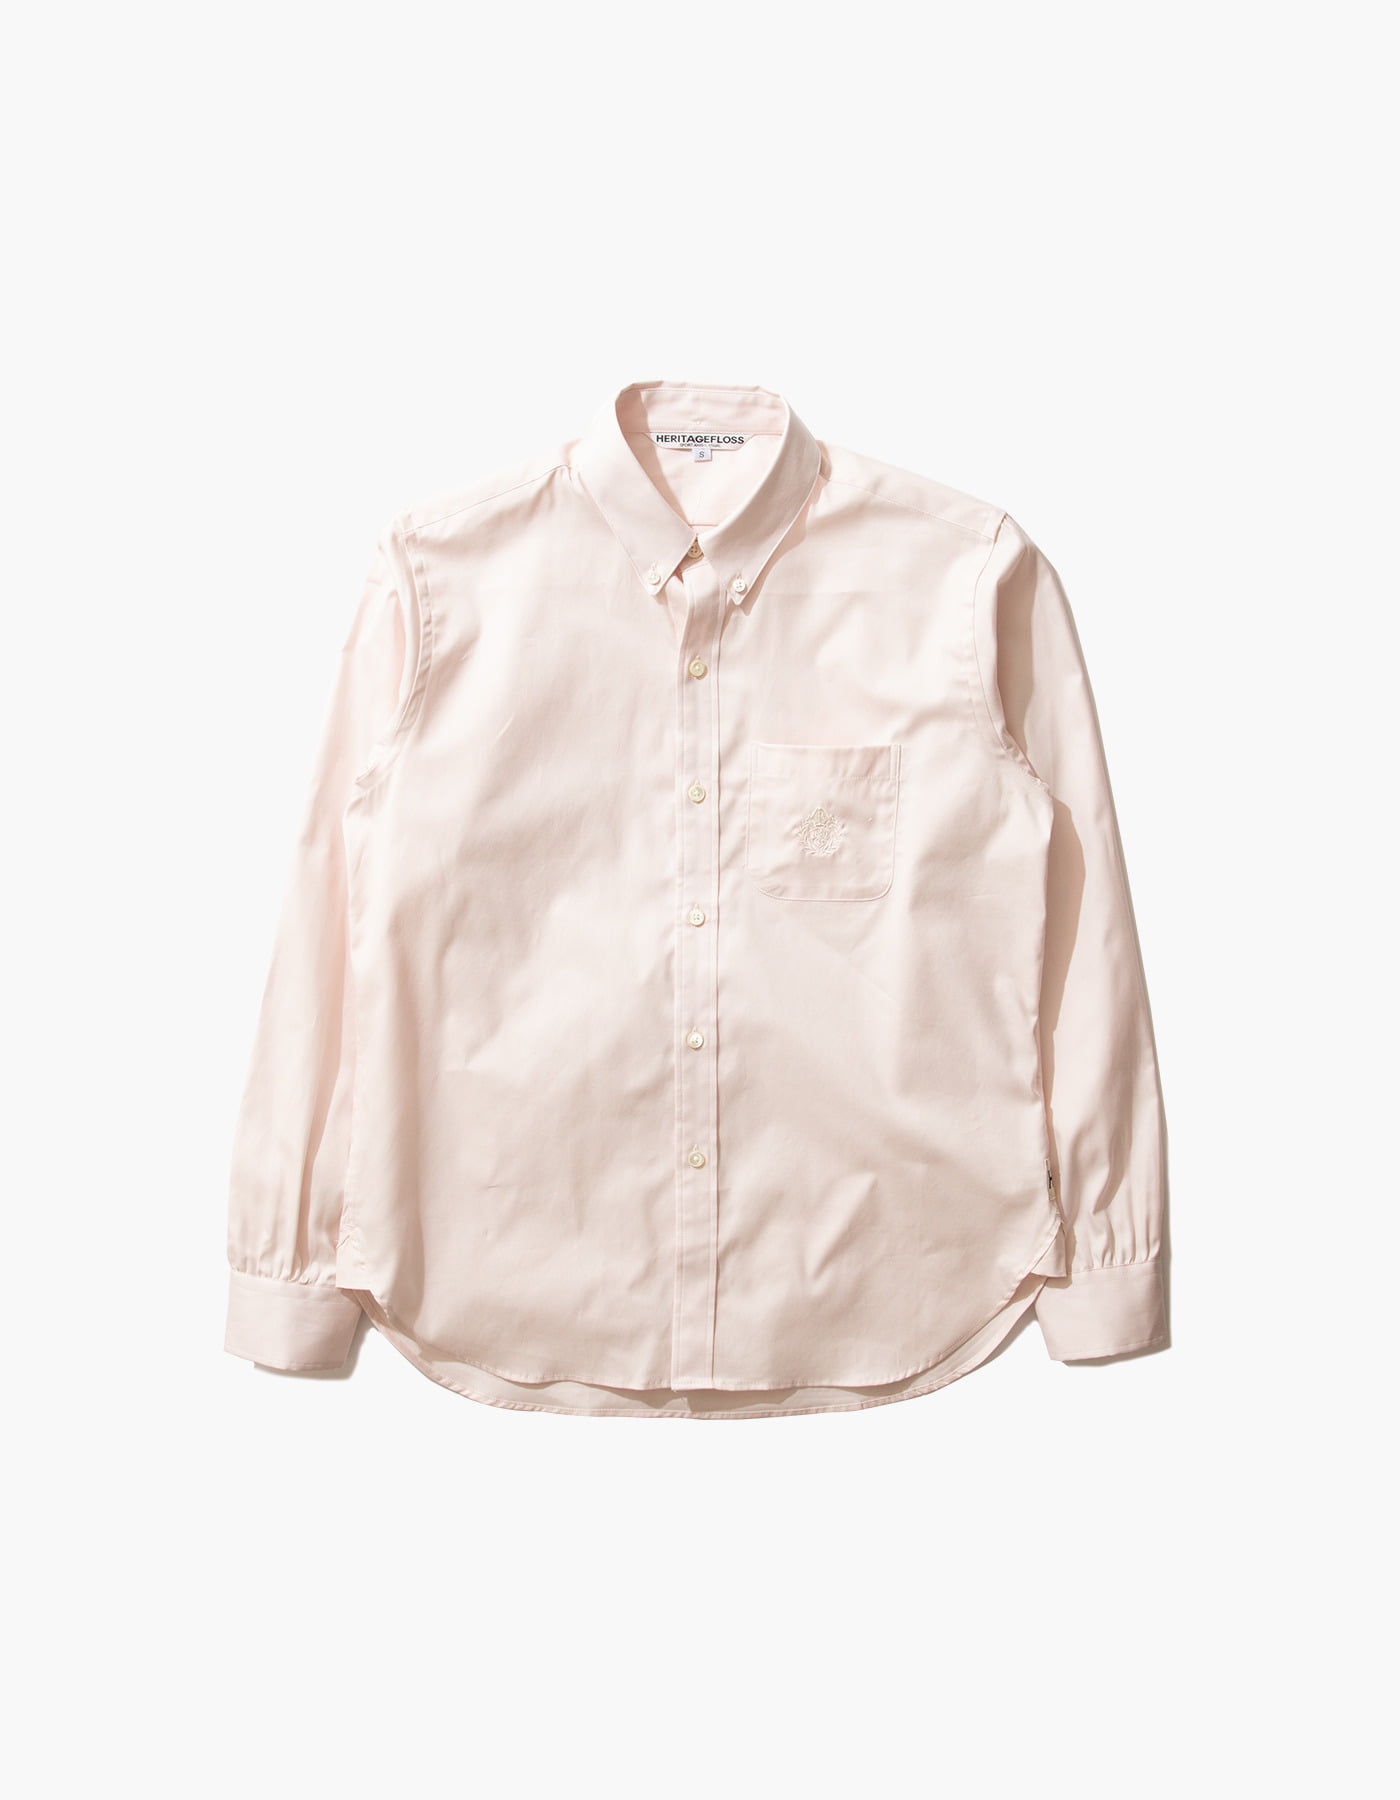 HFC COMBED OXFORD SHIRTS / PINK